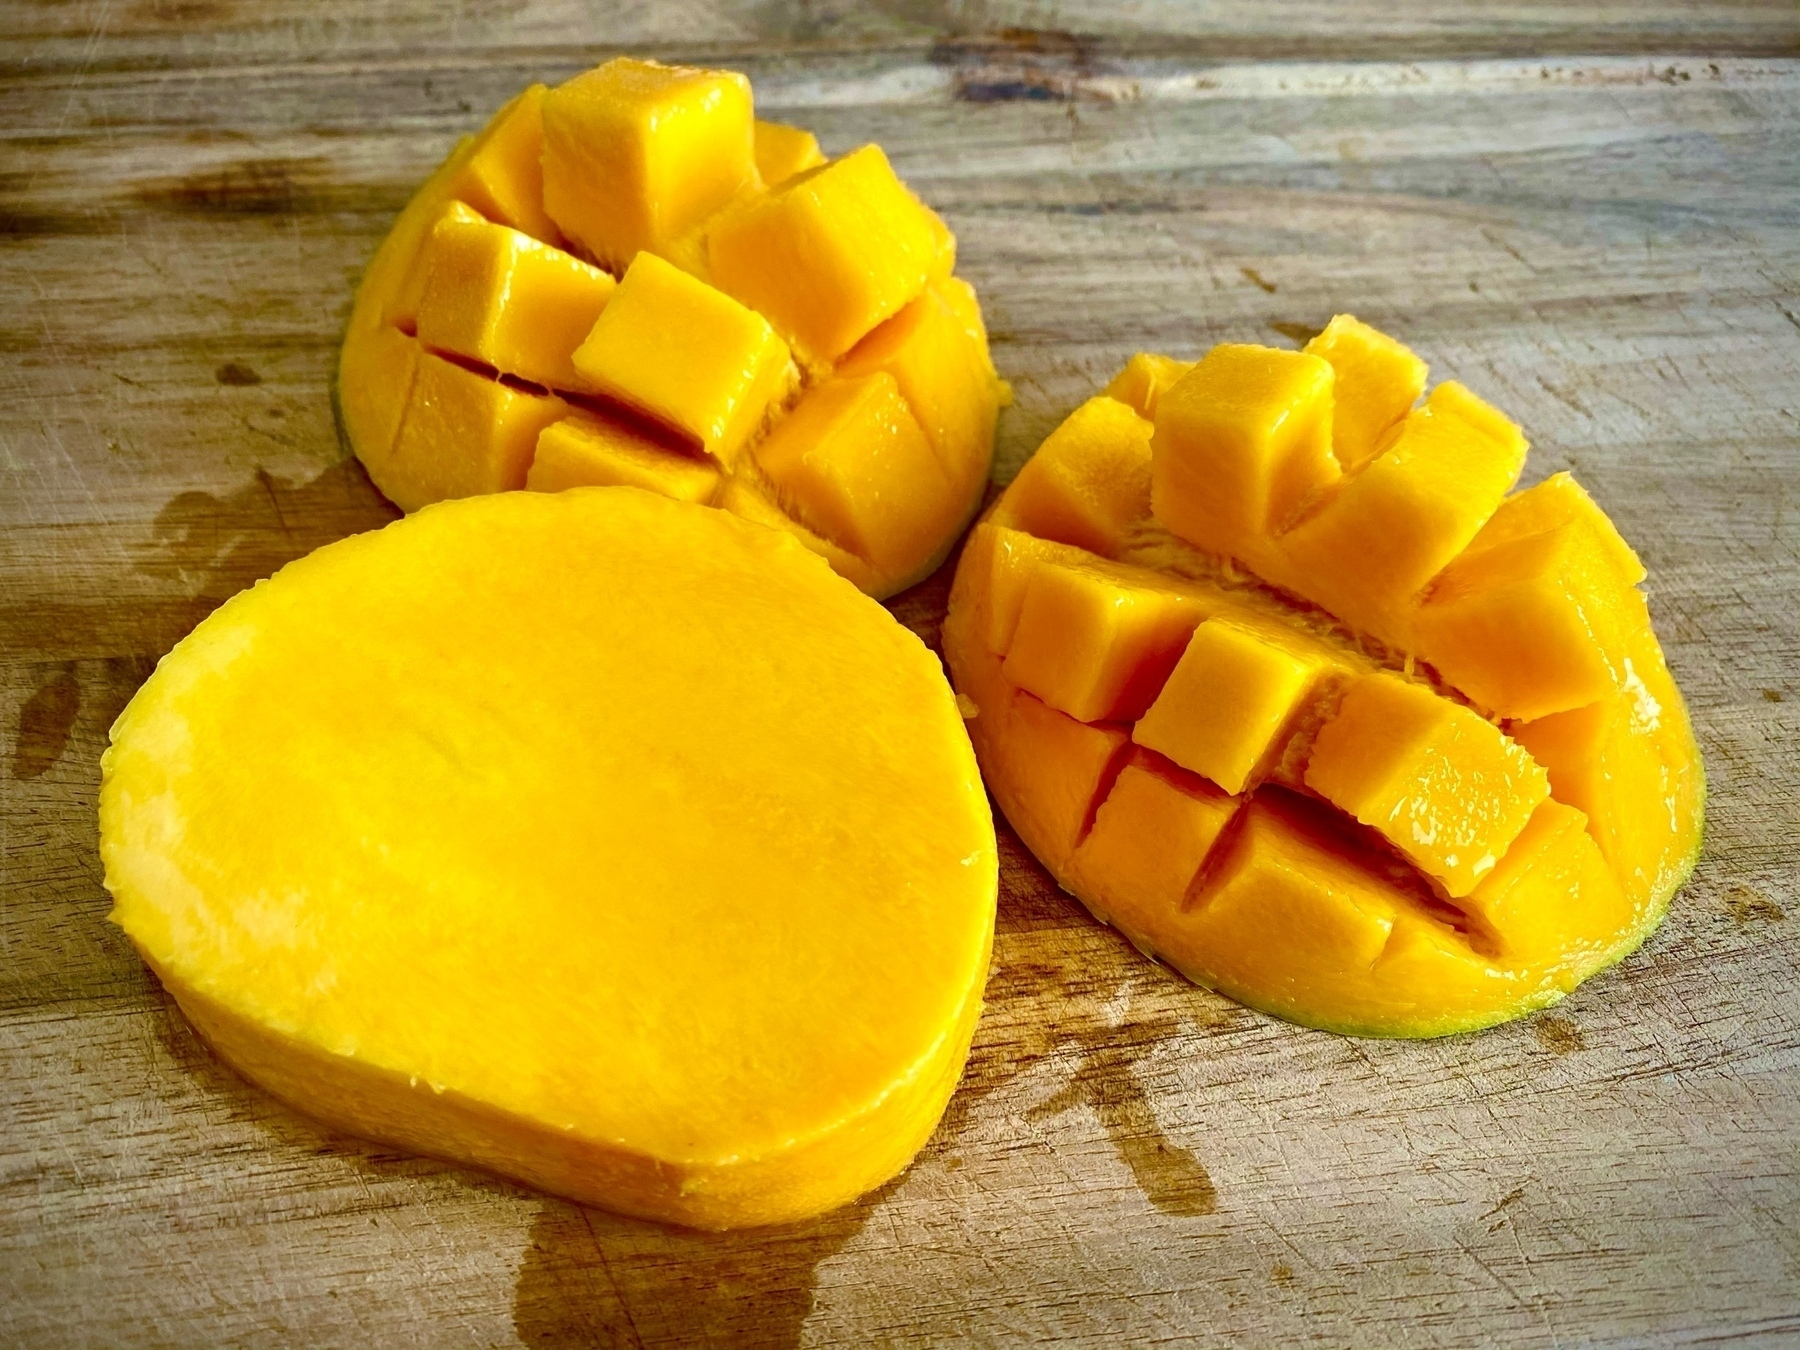 A mango sliced into thirds, two of which are hedgehog-style and one of which is the seed, all sitting on a wooden chopping board